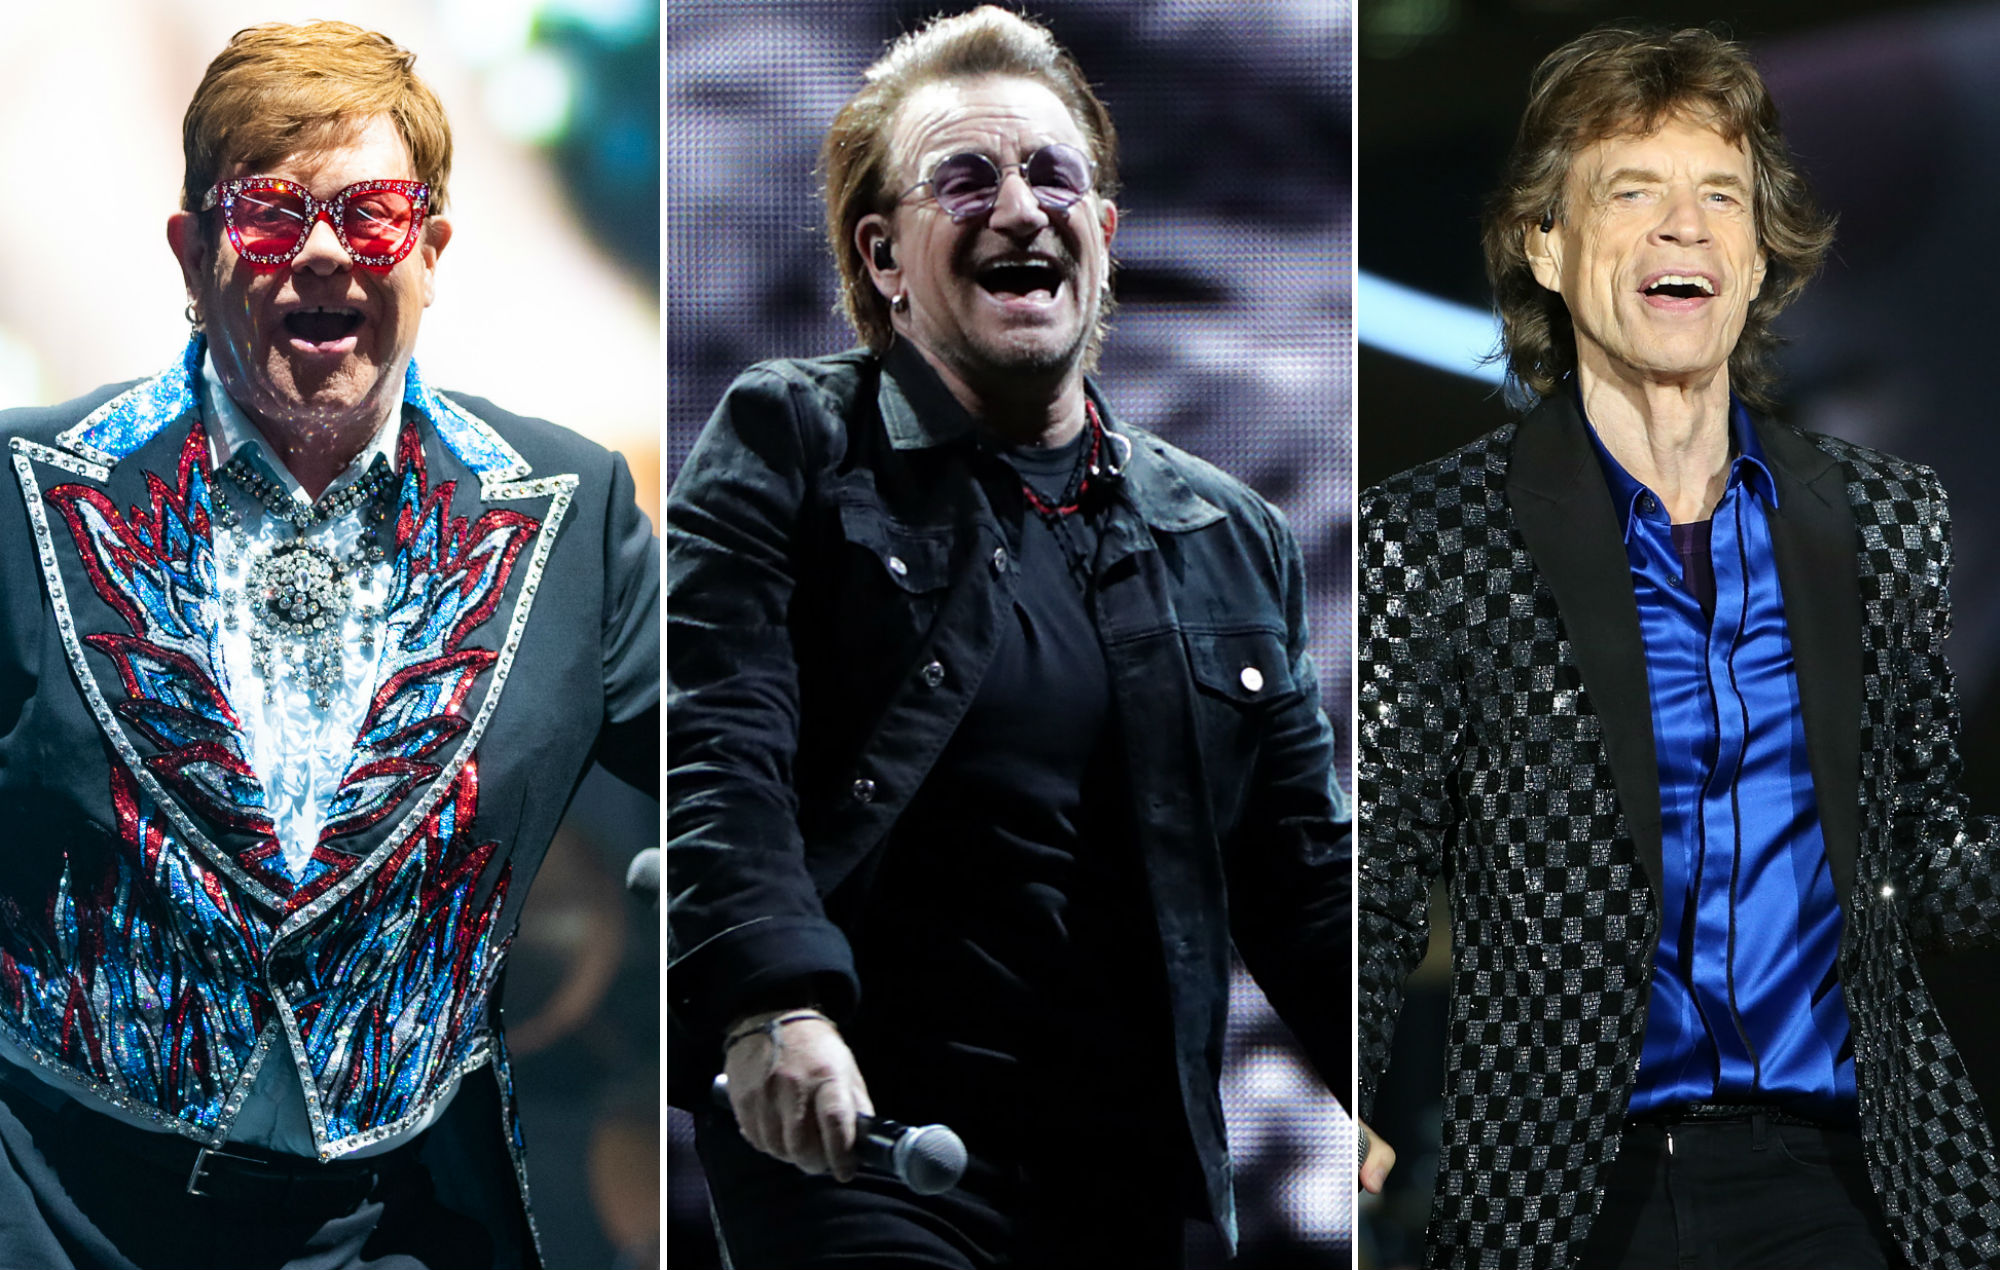 Rock documentaries about The Rolling Stones, U2 and Elton John face copyright lawsuit